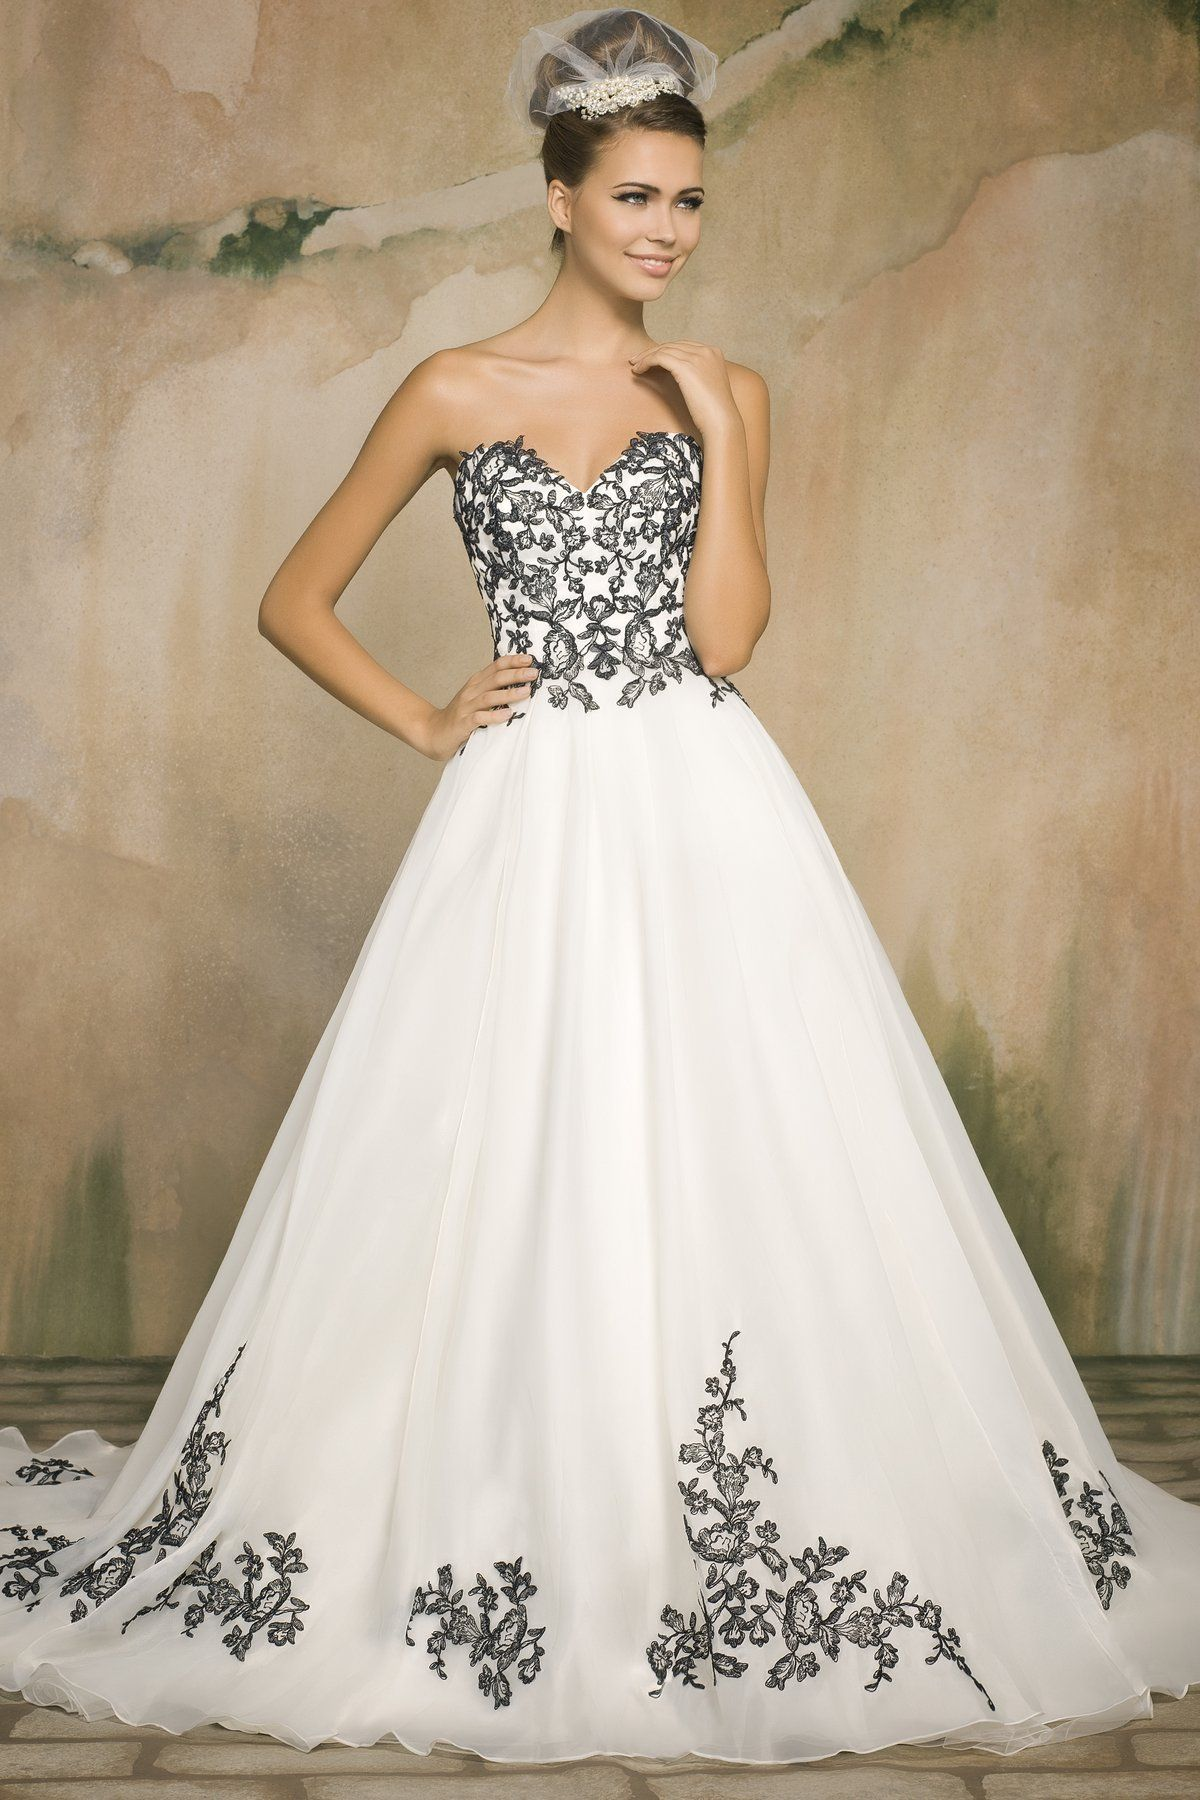 Pearl style at pearlbridals wedding dresses pinterest